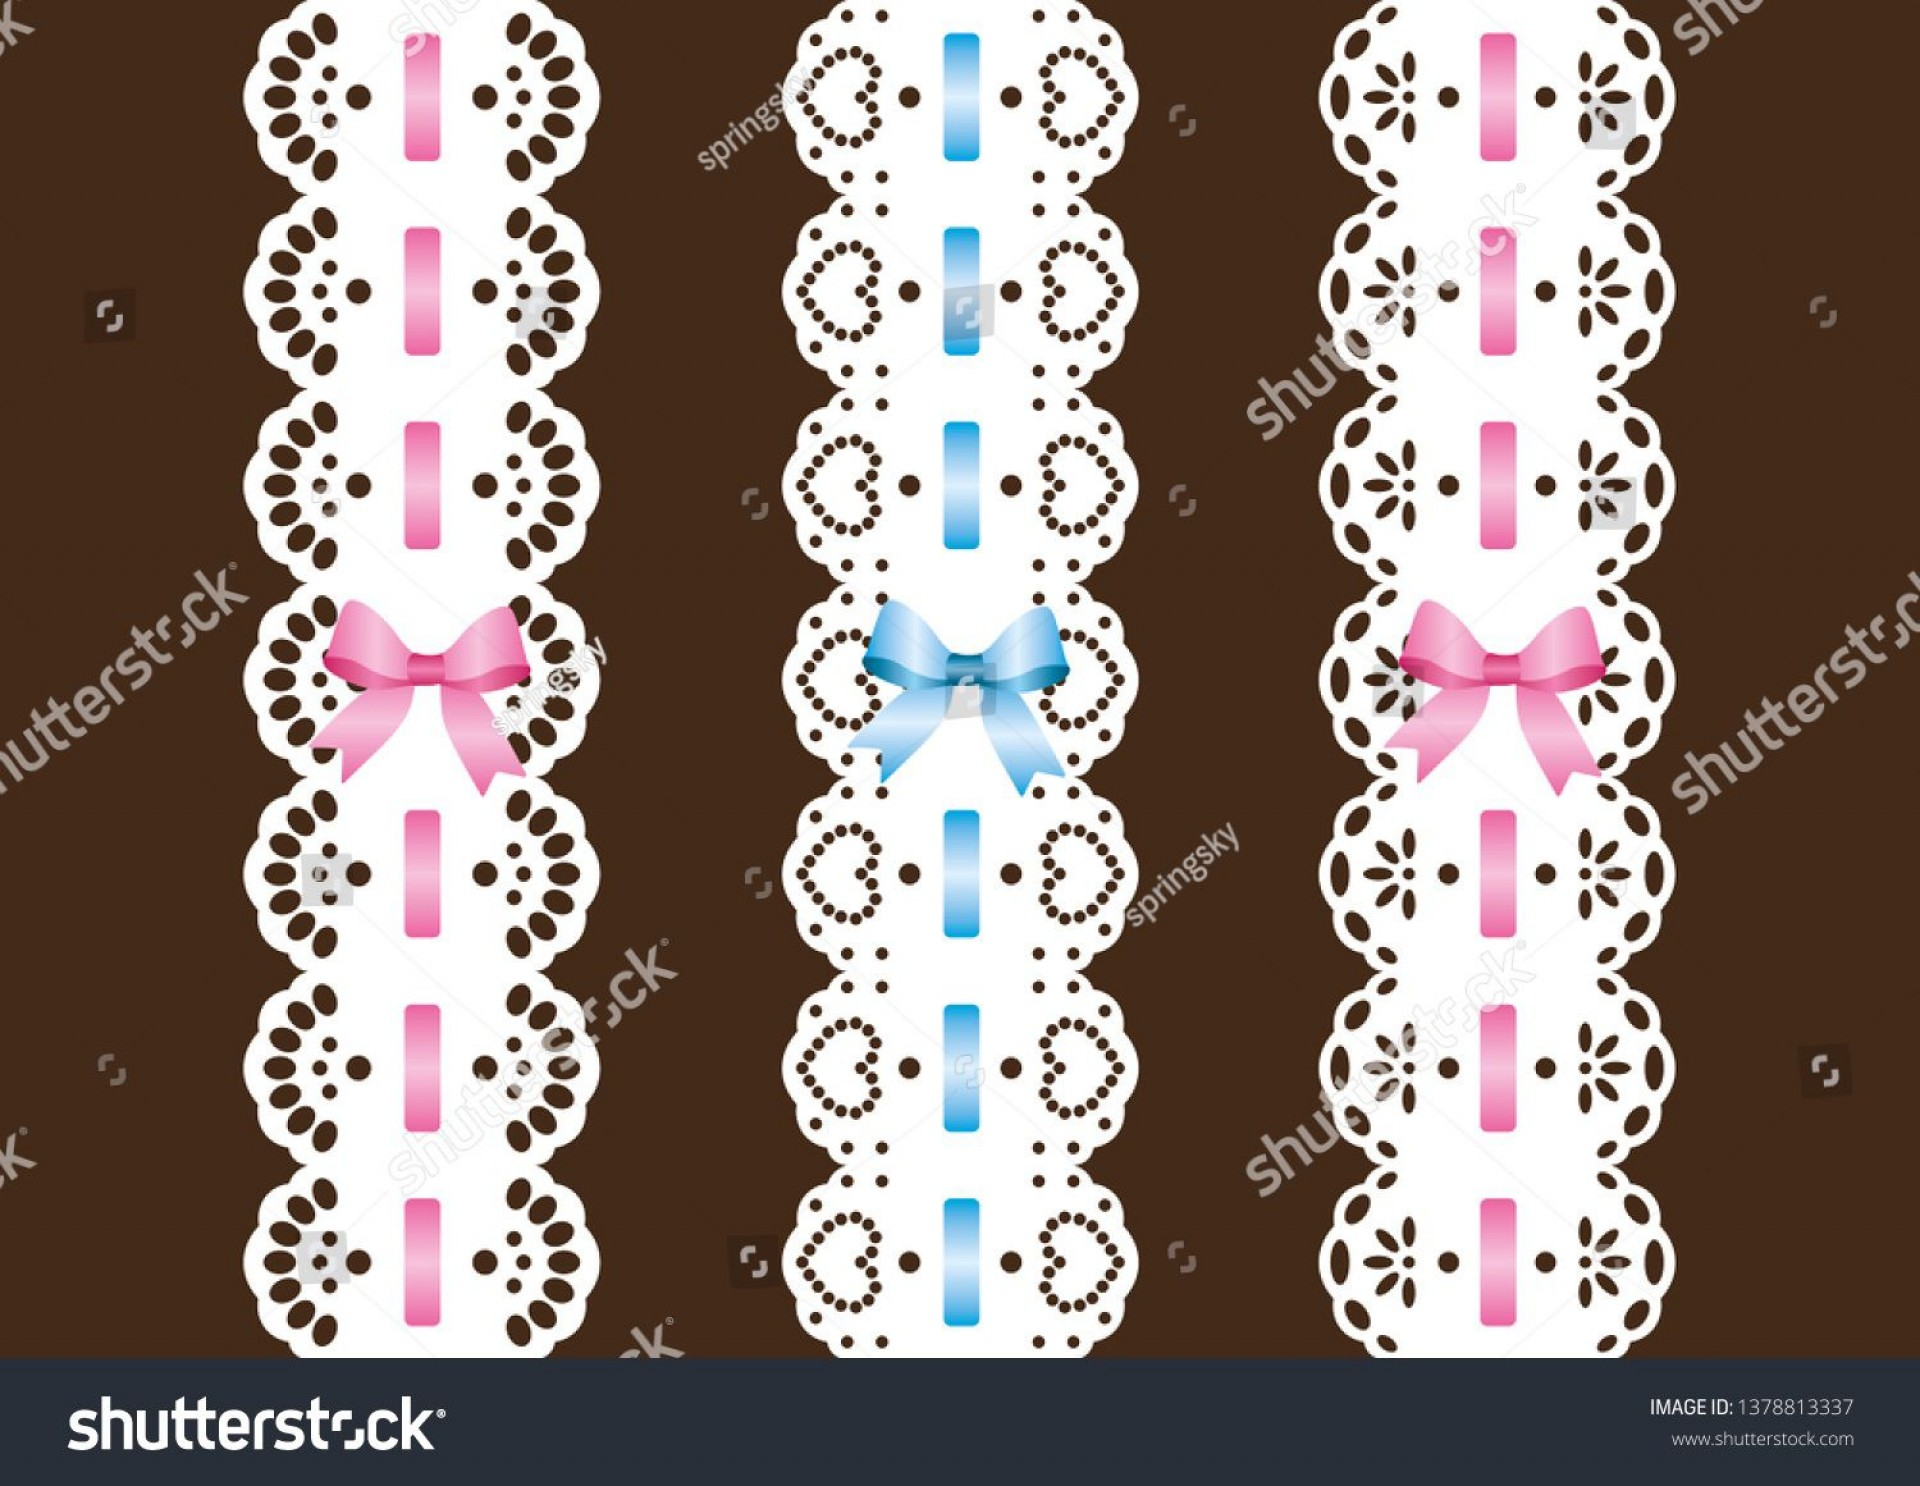 009 Archaicawful Paper Cut Out Template Concept  Templates Flower Doll Free1920